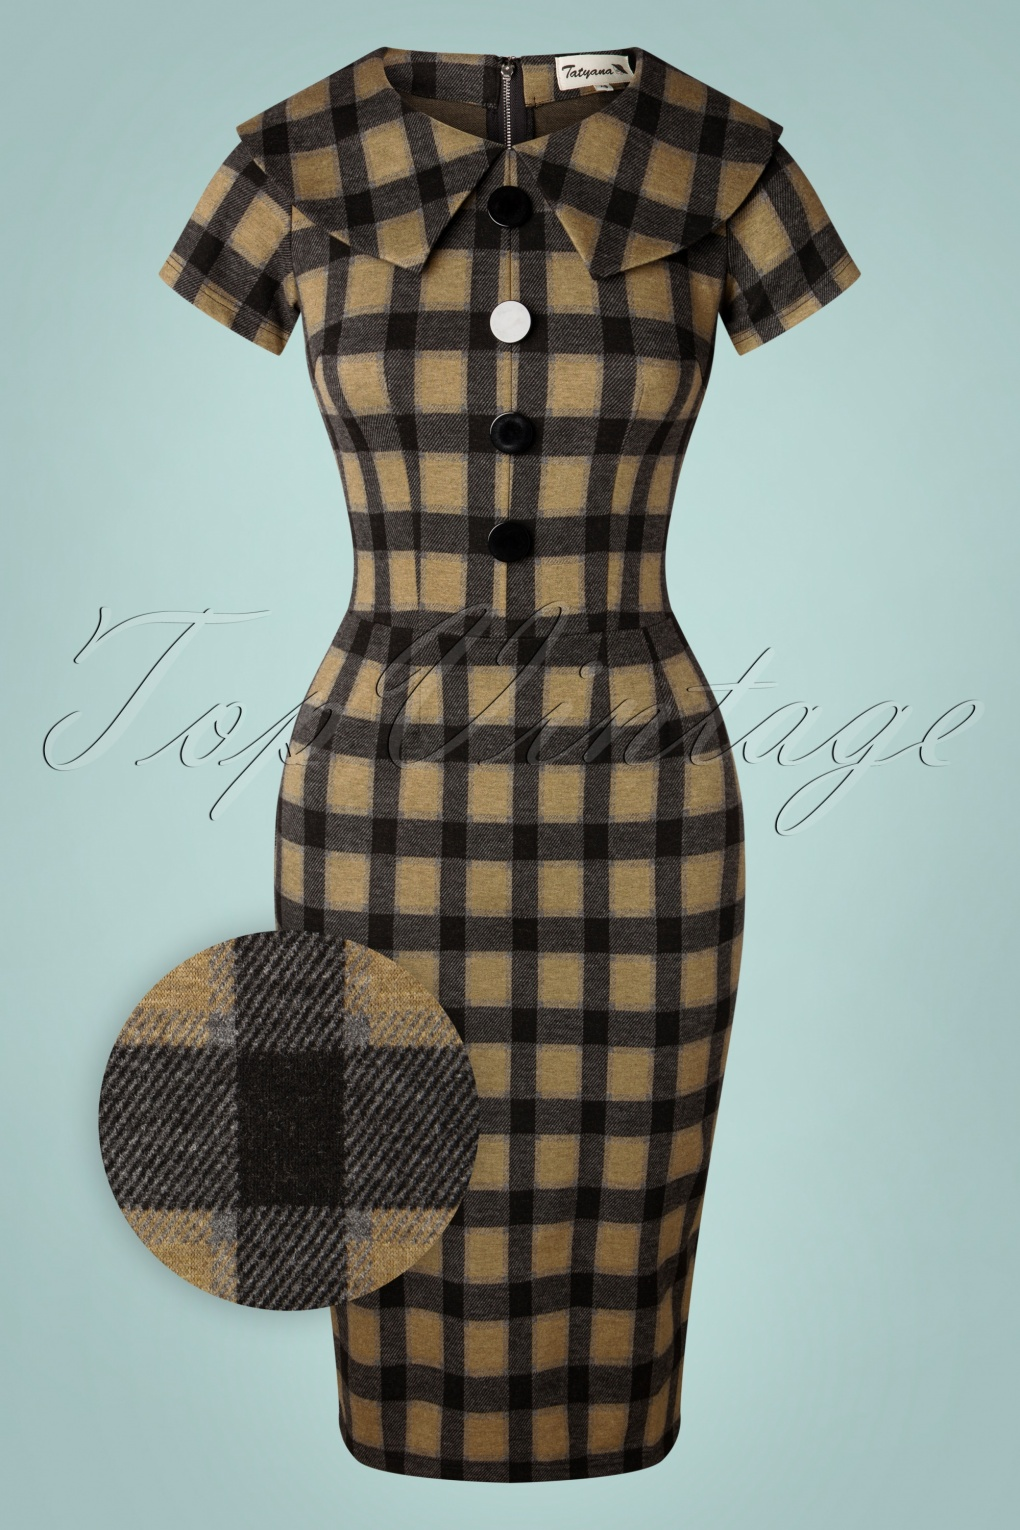 Wiggle Dresses | Pencil Dresses 40s, 50s, 60s 50s Rita Check Pencil Dress in Beige and Black £109.82 AT vintagedancer.com